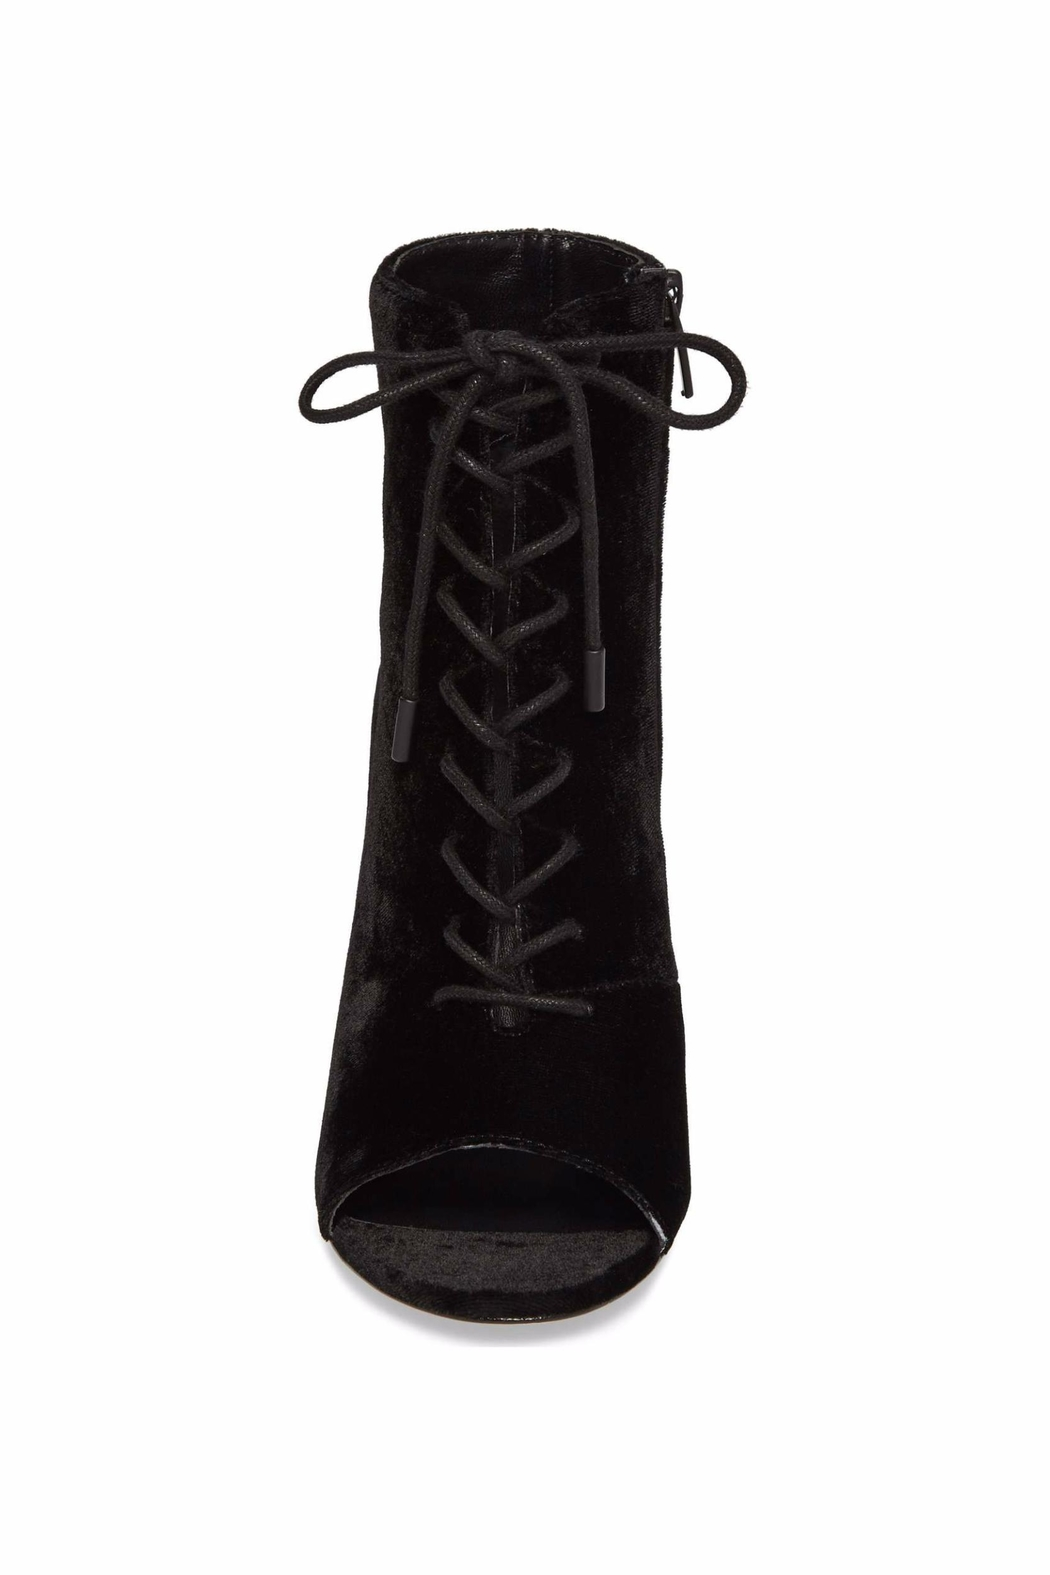 Joie Velvet Lace Up Bootie - Back Cropped Image